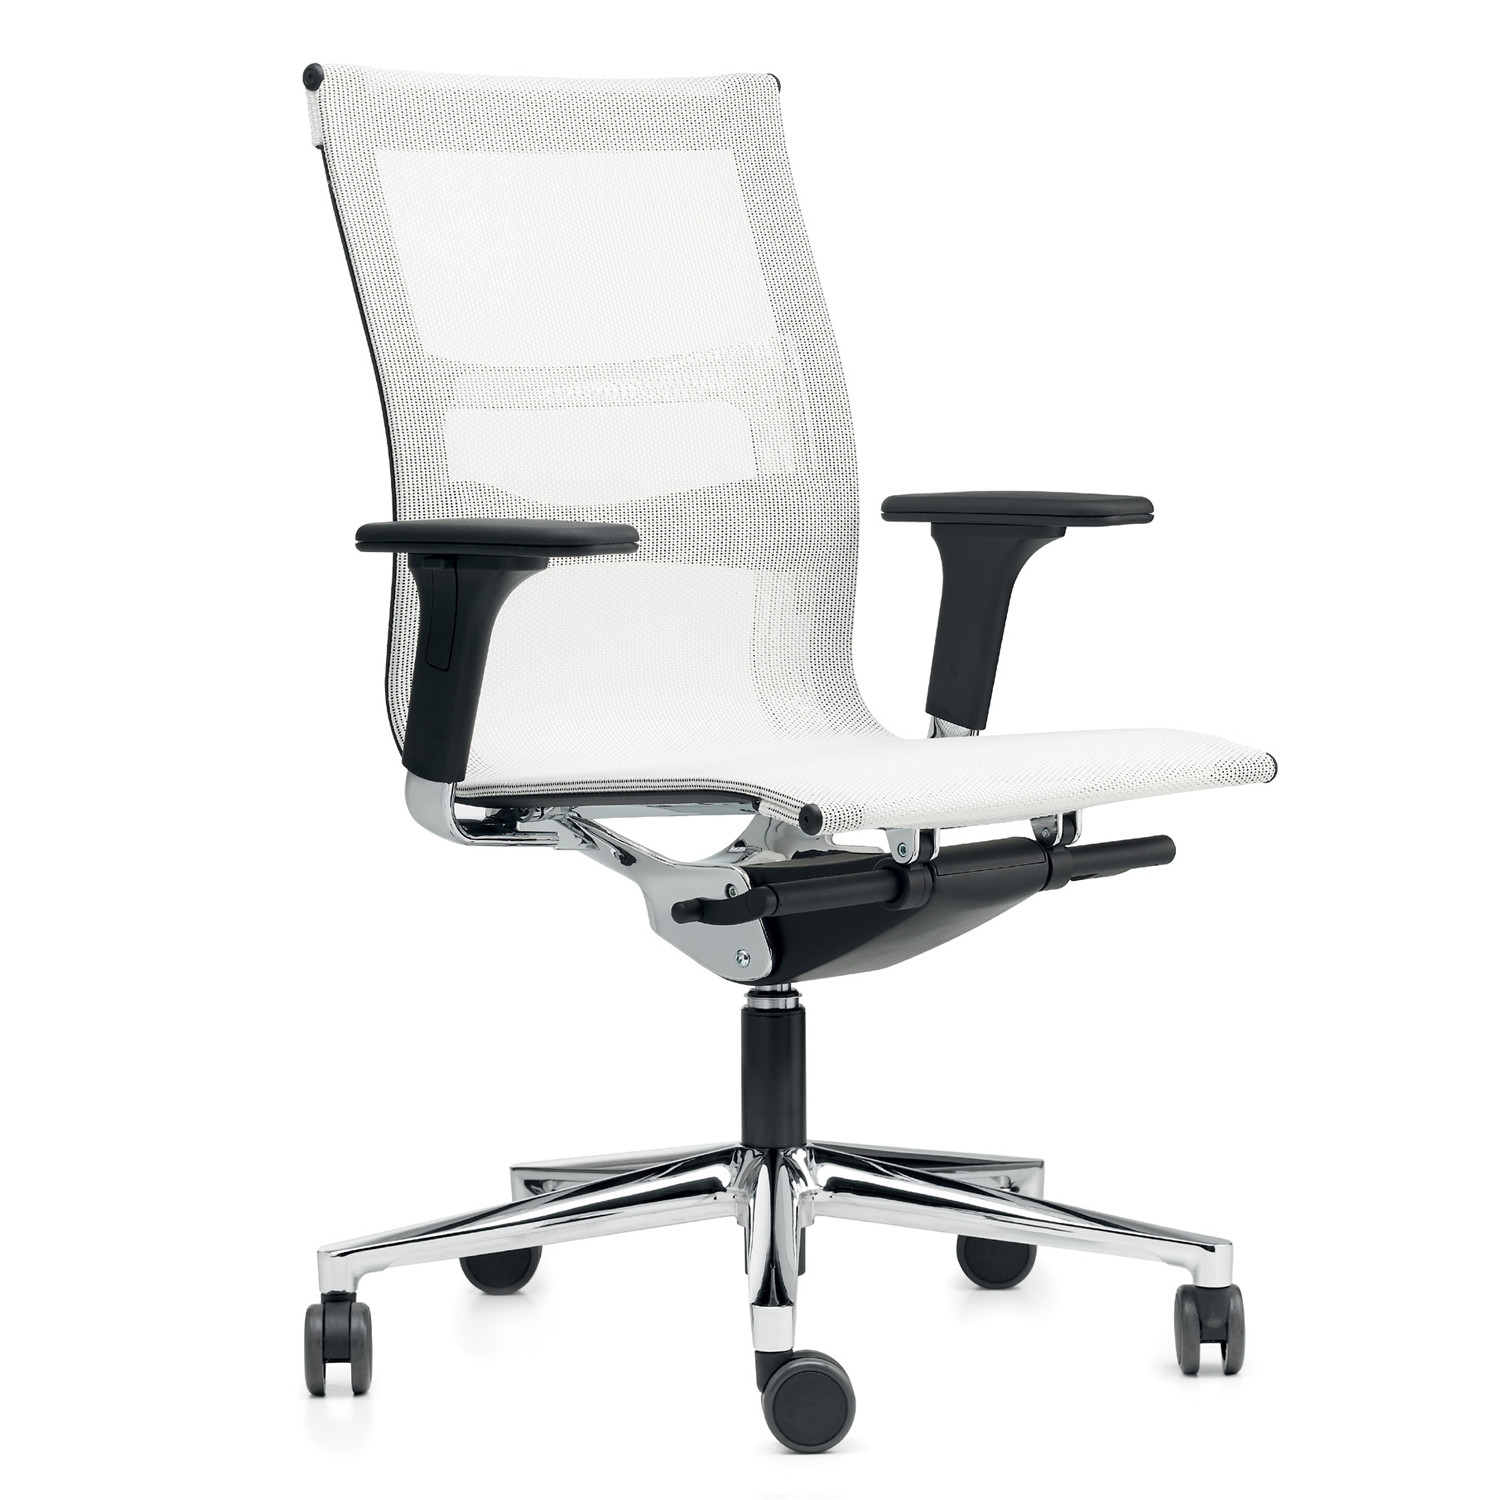 Unia Plus Desk Chair with mesh back